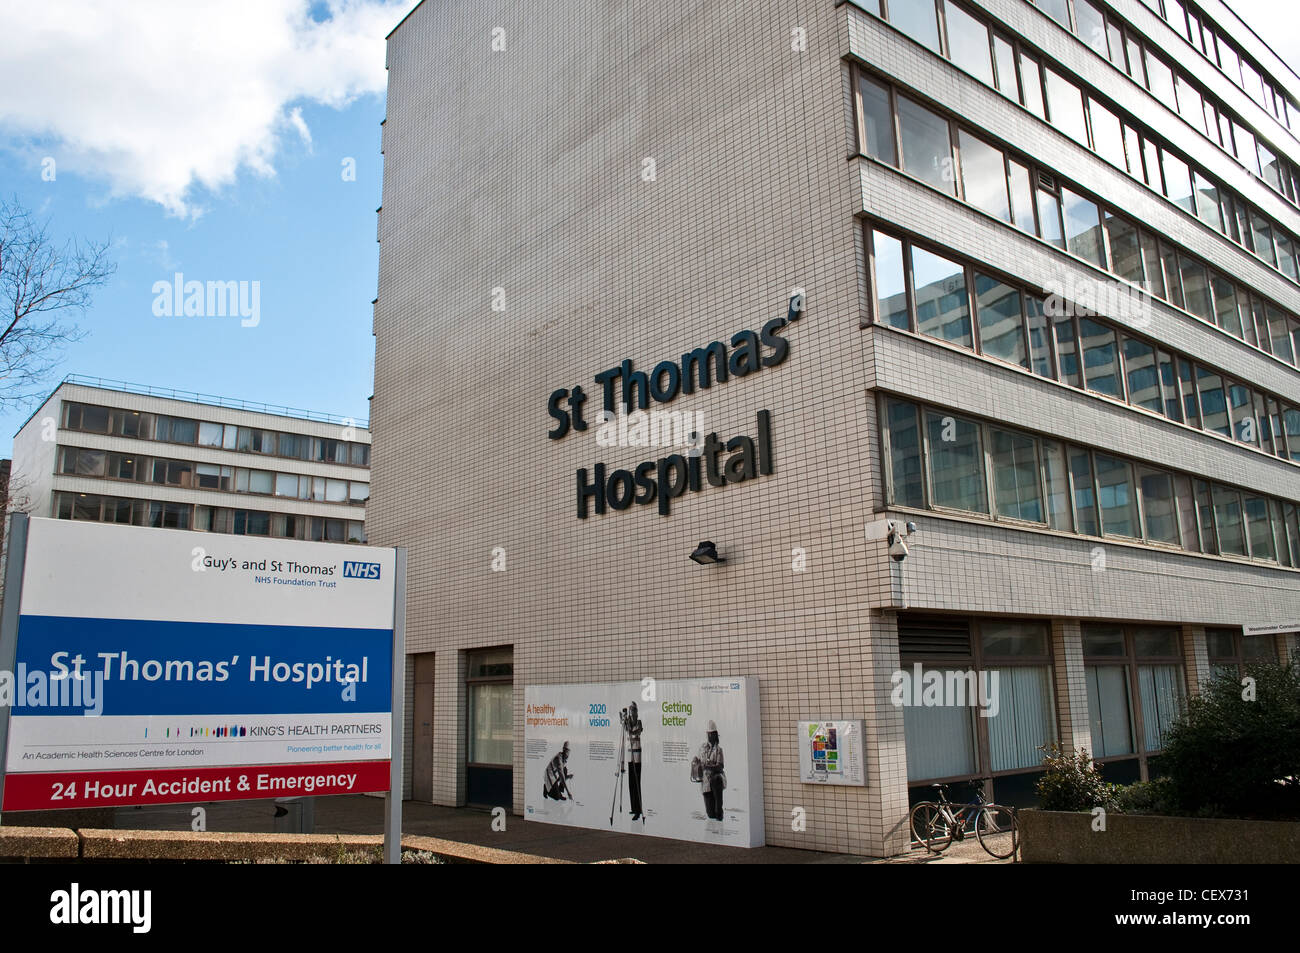 St Thomas' Hospital, London, UK - Stock Image